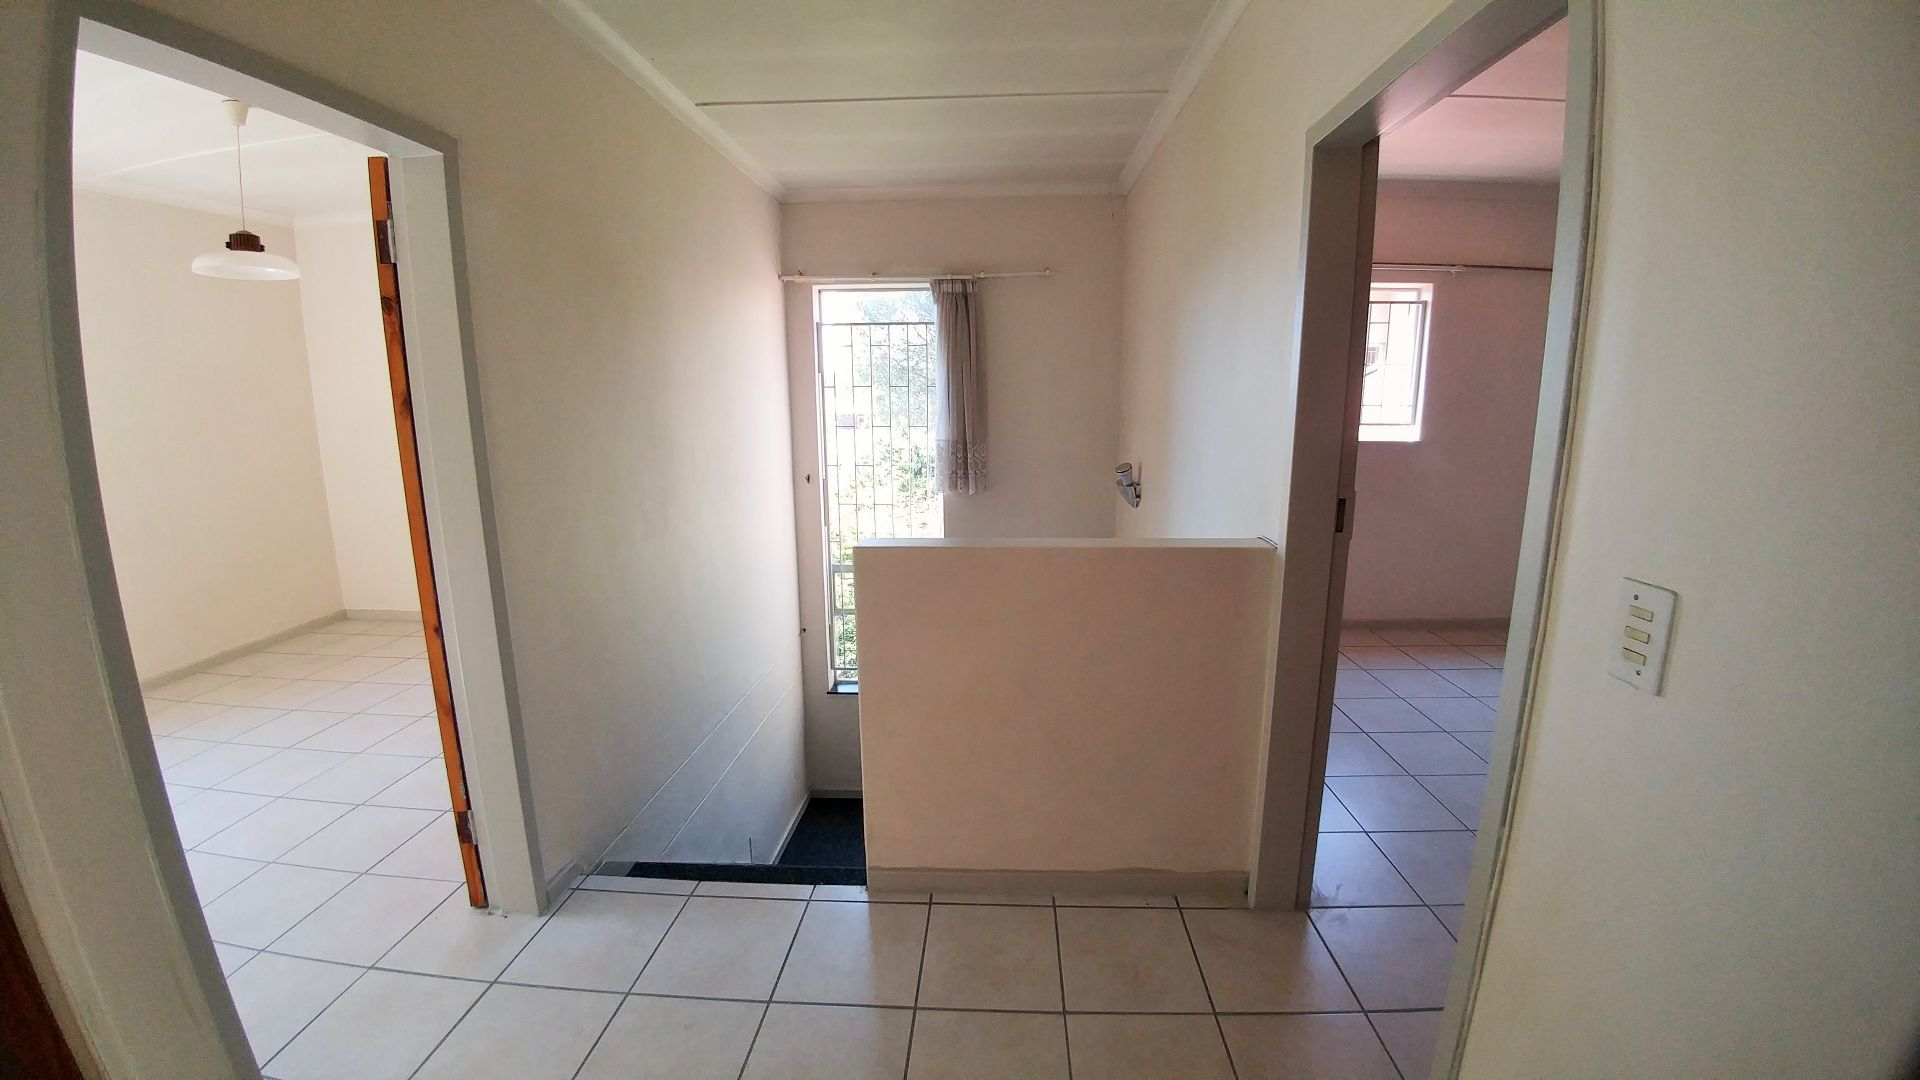 Potchefstroom Central property for sale. Ref No: 13547446. Picture no 15